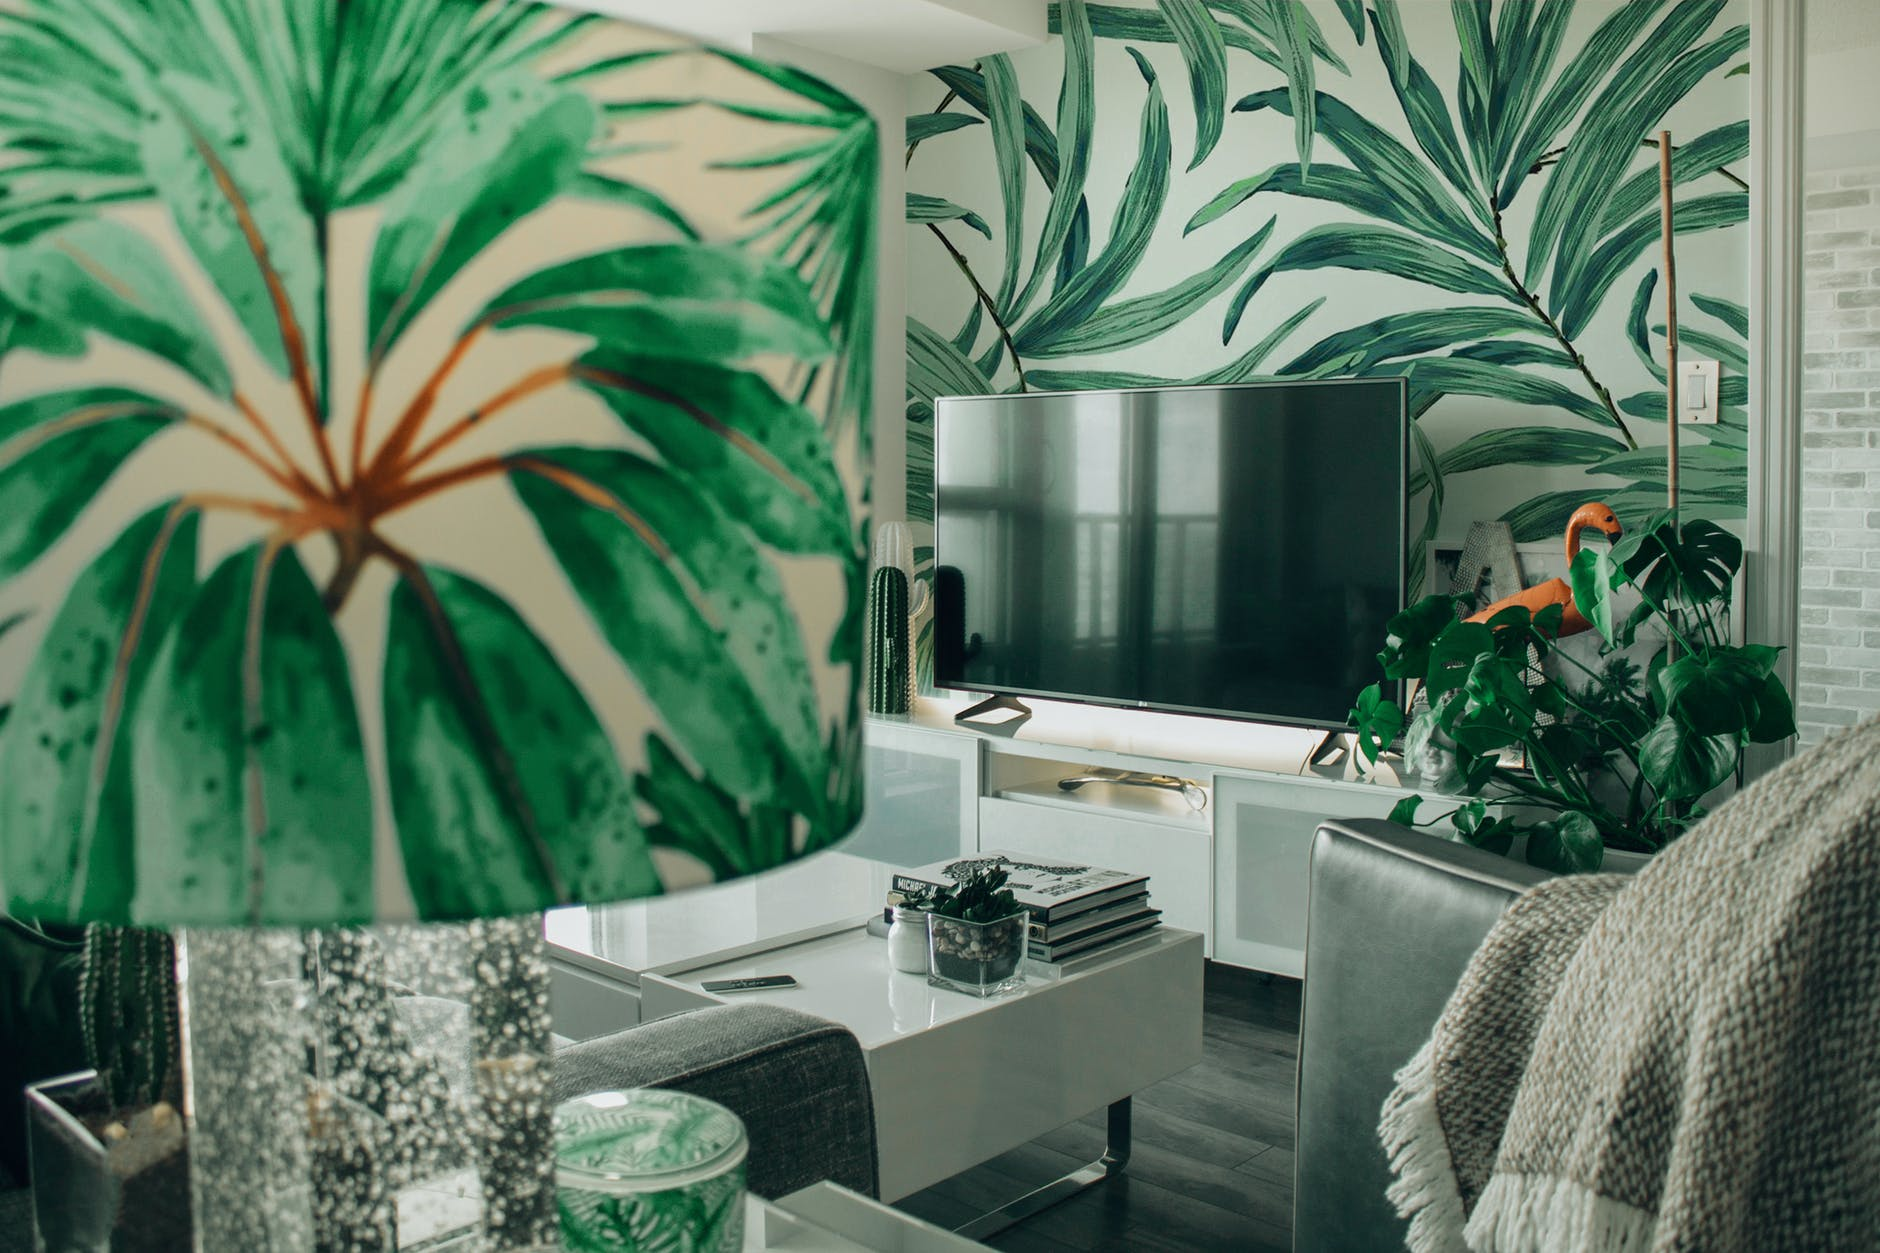 The Most Amazing Decorating Ideas